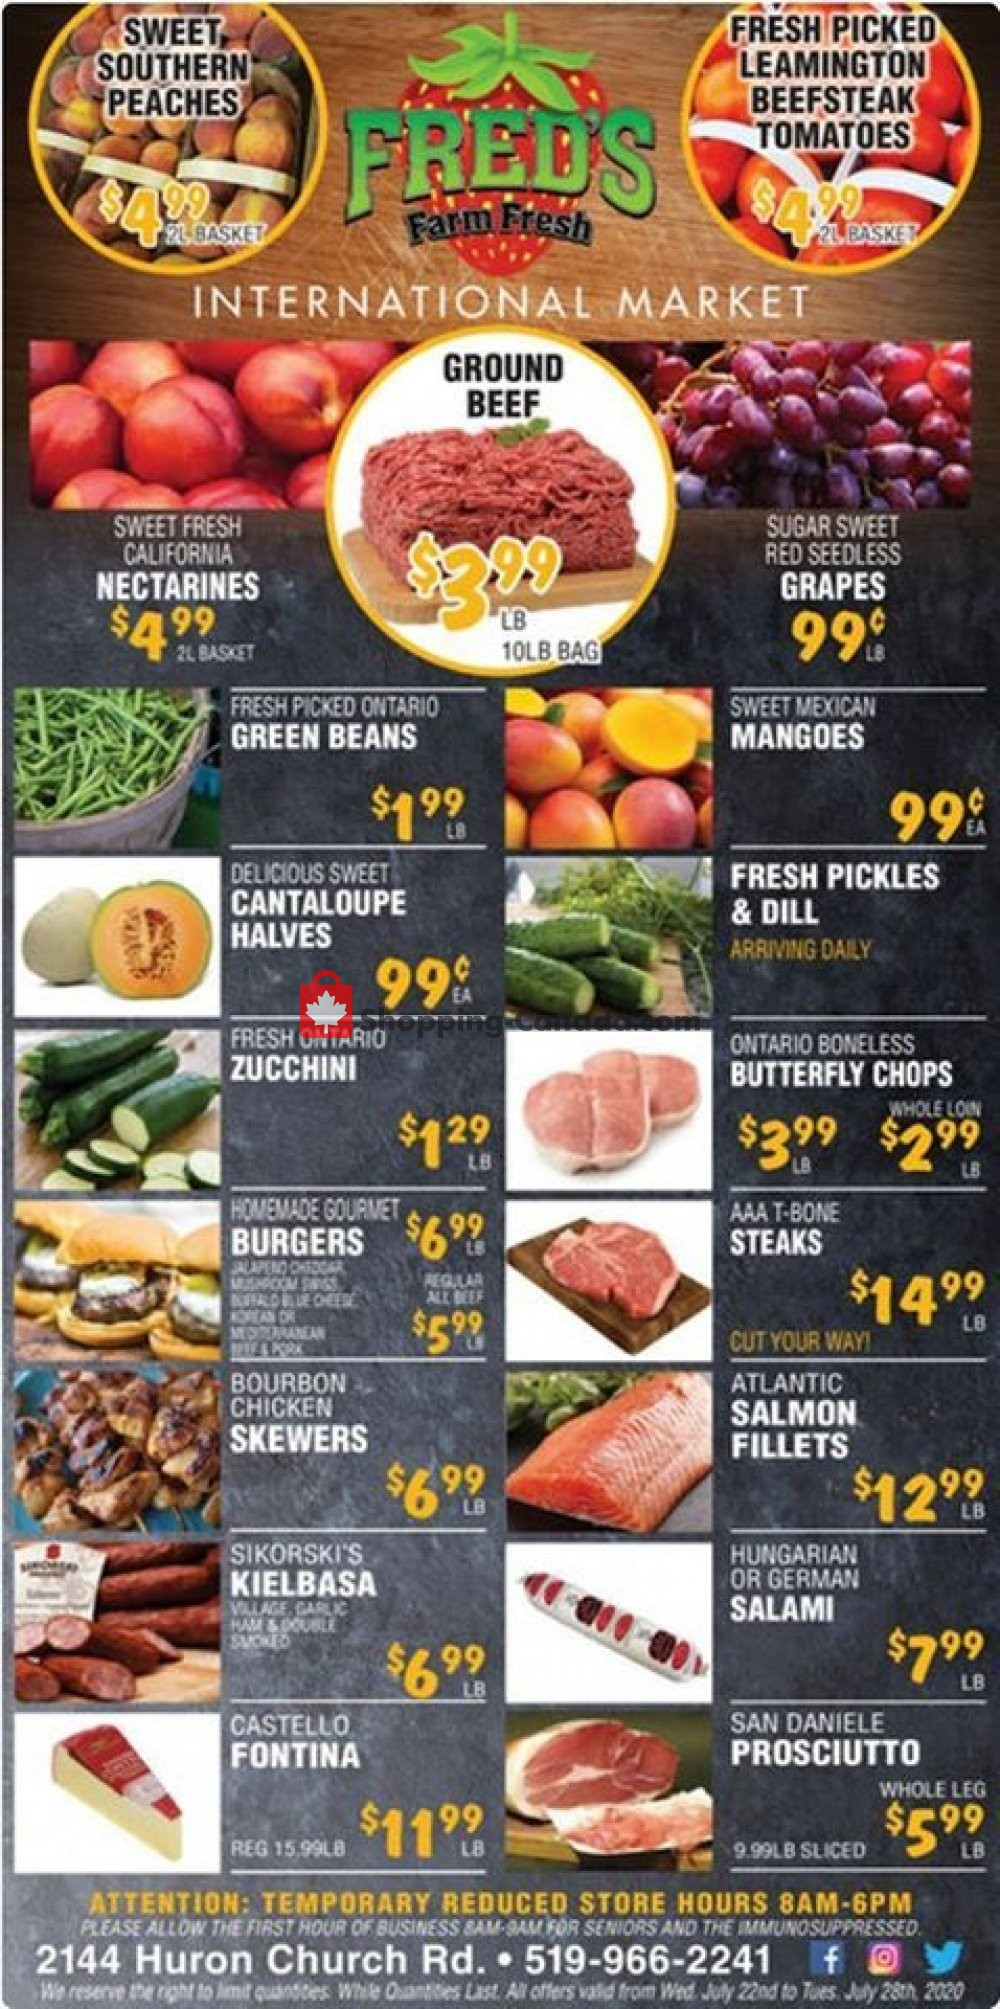 Flyer Fred's Farm Fresh Canada - from Wednesday July 22, 2020 to Tuesday July 28, 2020